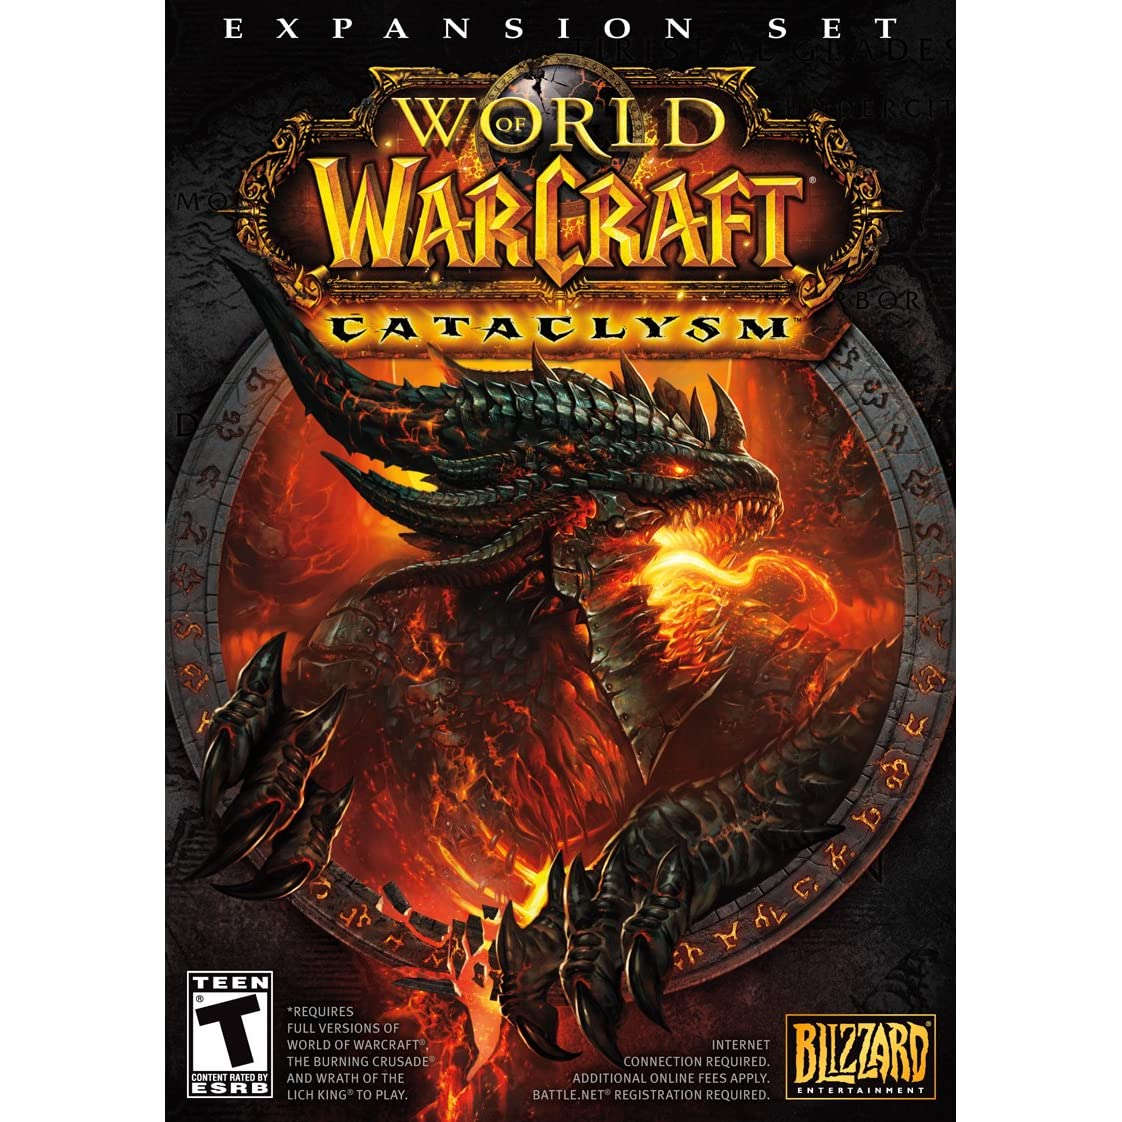 Online Game, Online Games, Video Game, Video Games, PC Games, Action, All Games, World of Warcraft: Cataclysm